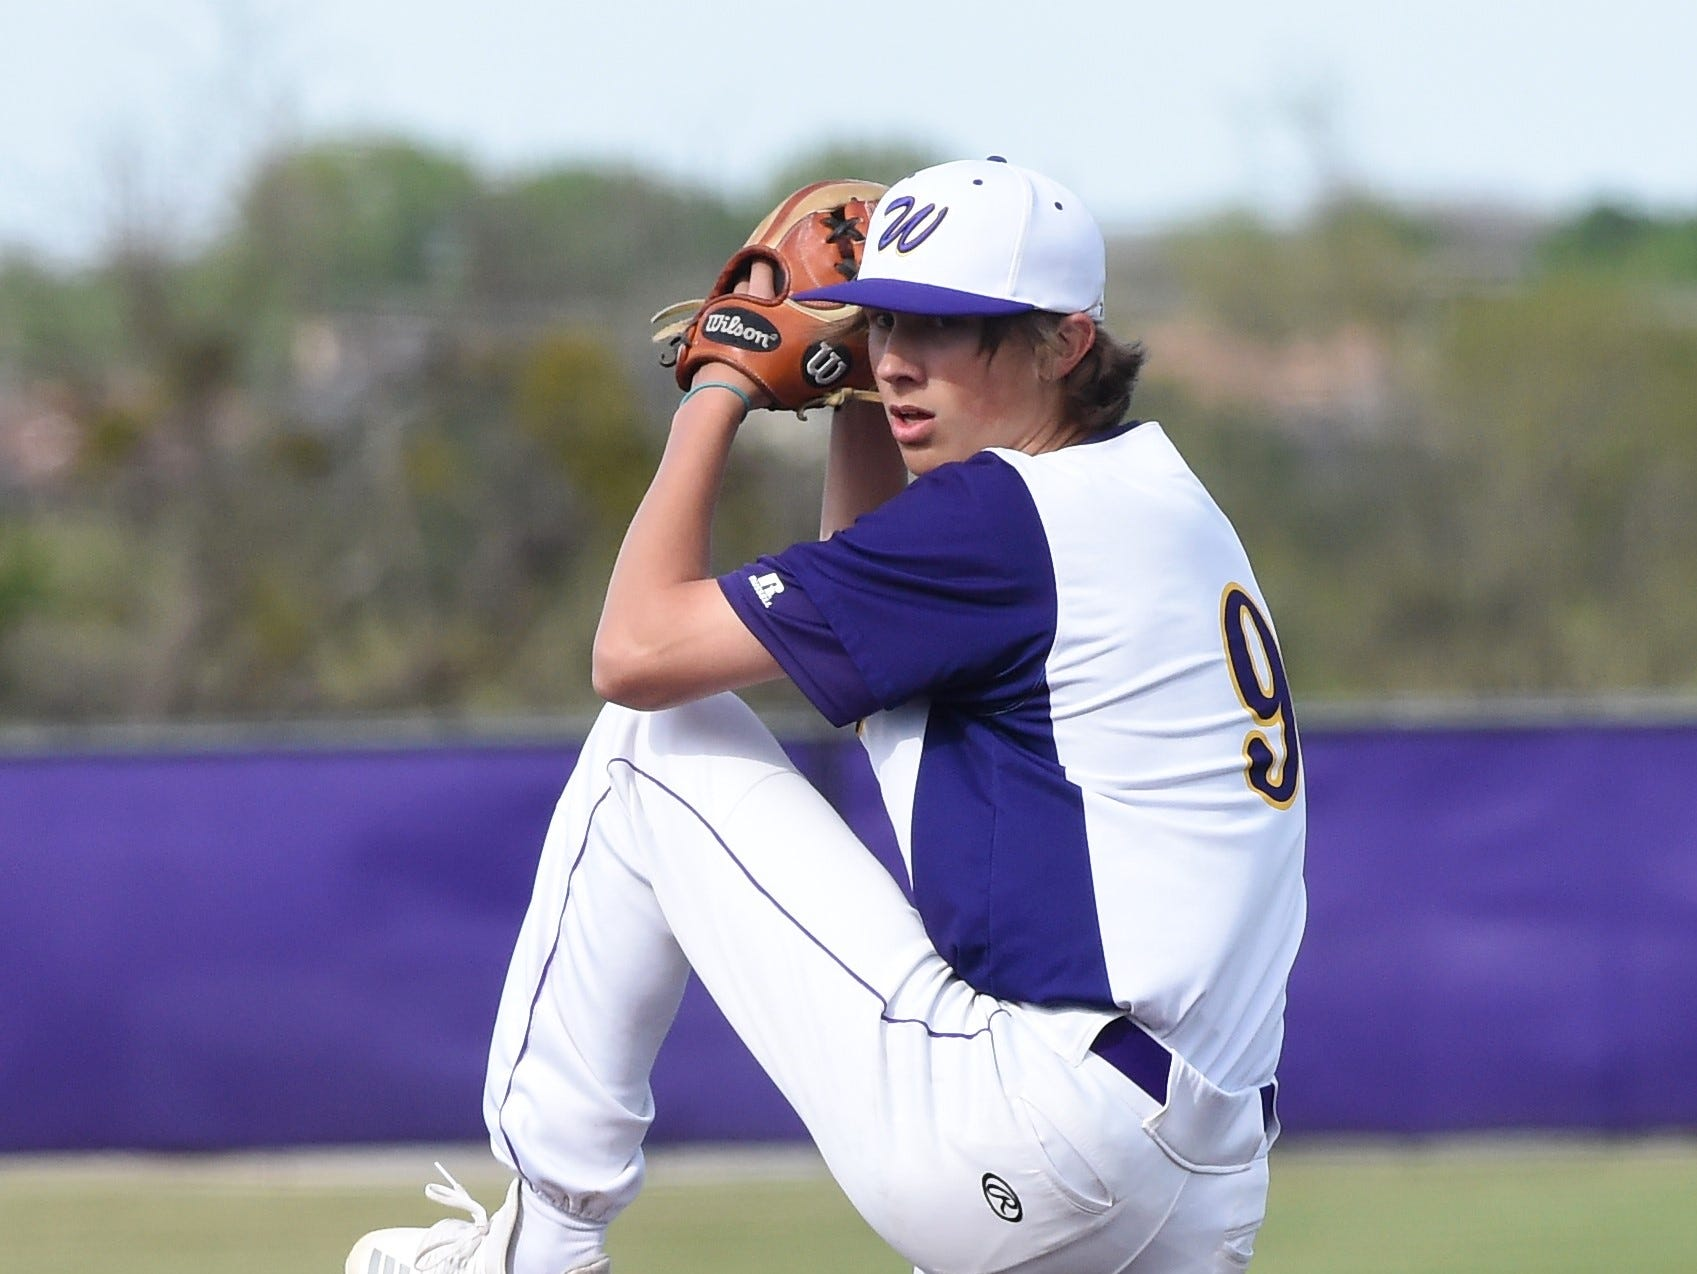 Wylie pitcher Brooks Gay (9) goes through his windup against Cooper at Bulldog Field on Friday, April 12, 2019. Gay allowed one unearned run in six innings of work to earn the 4-3 win.